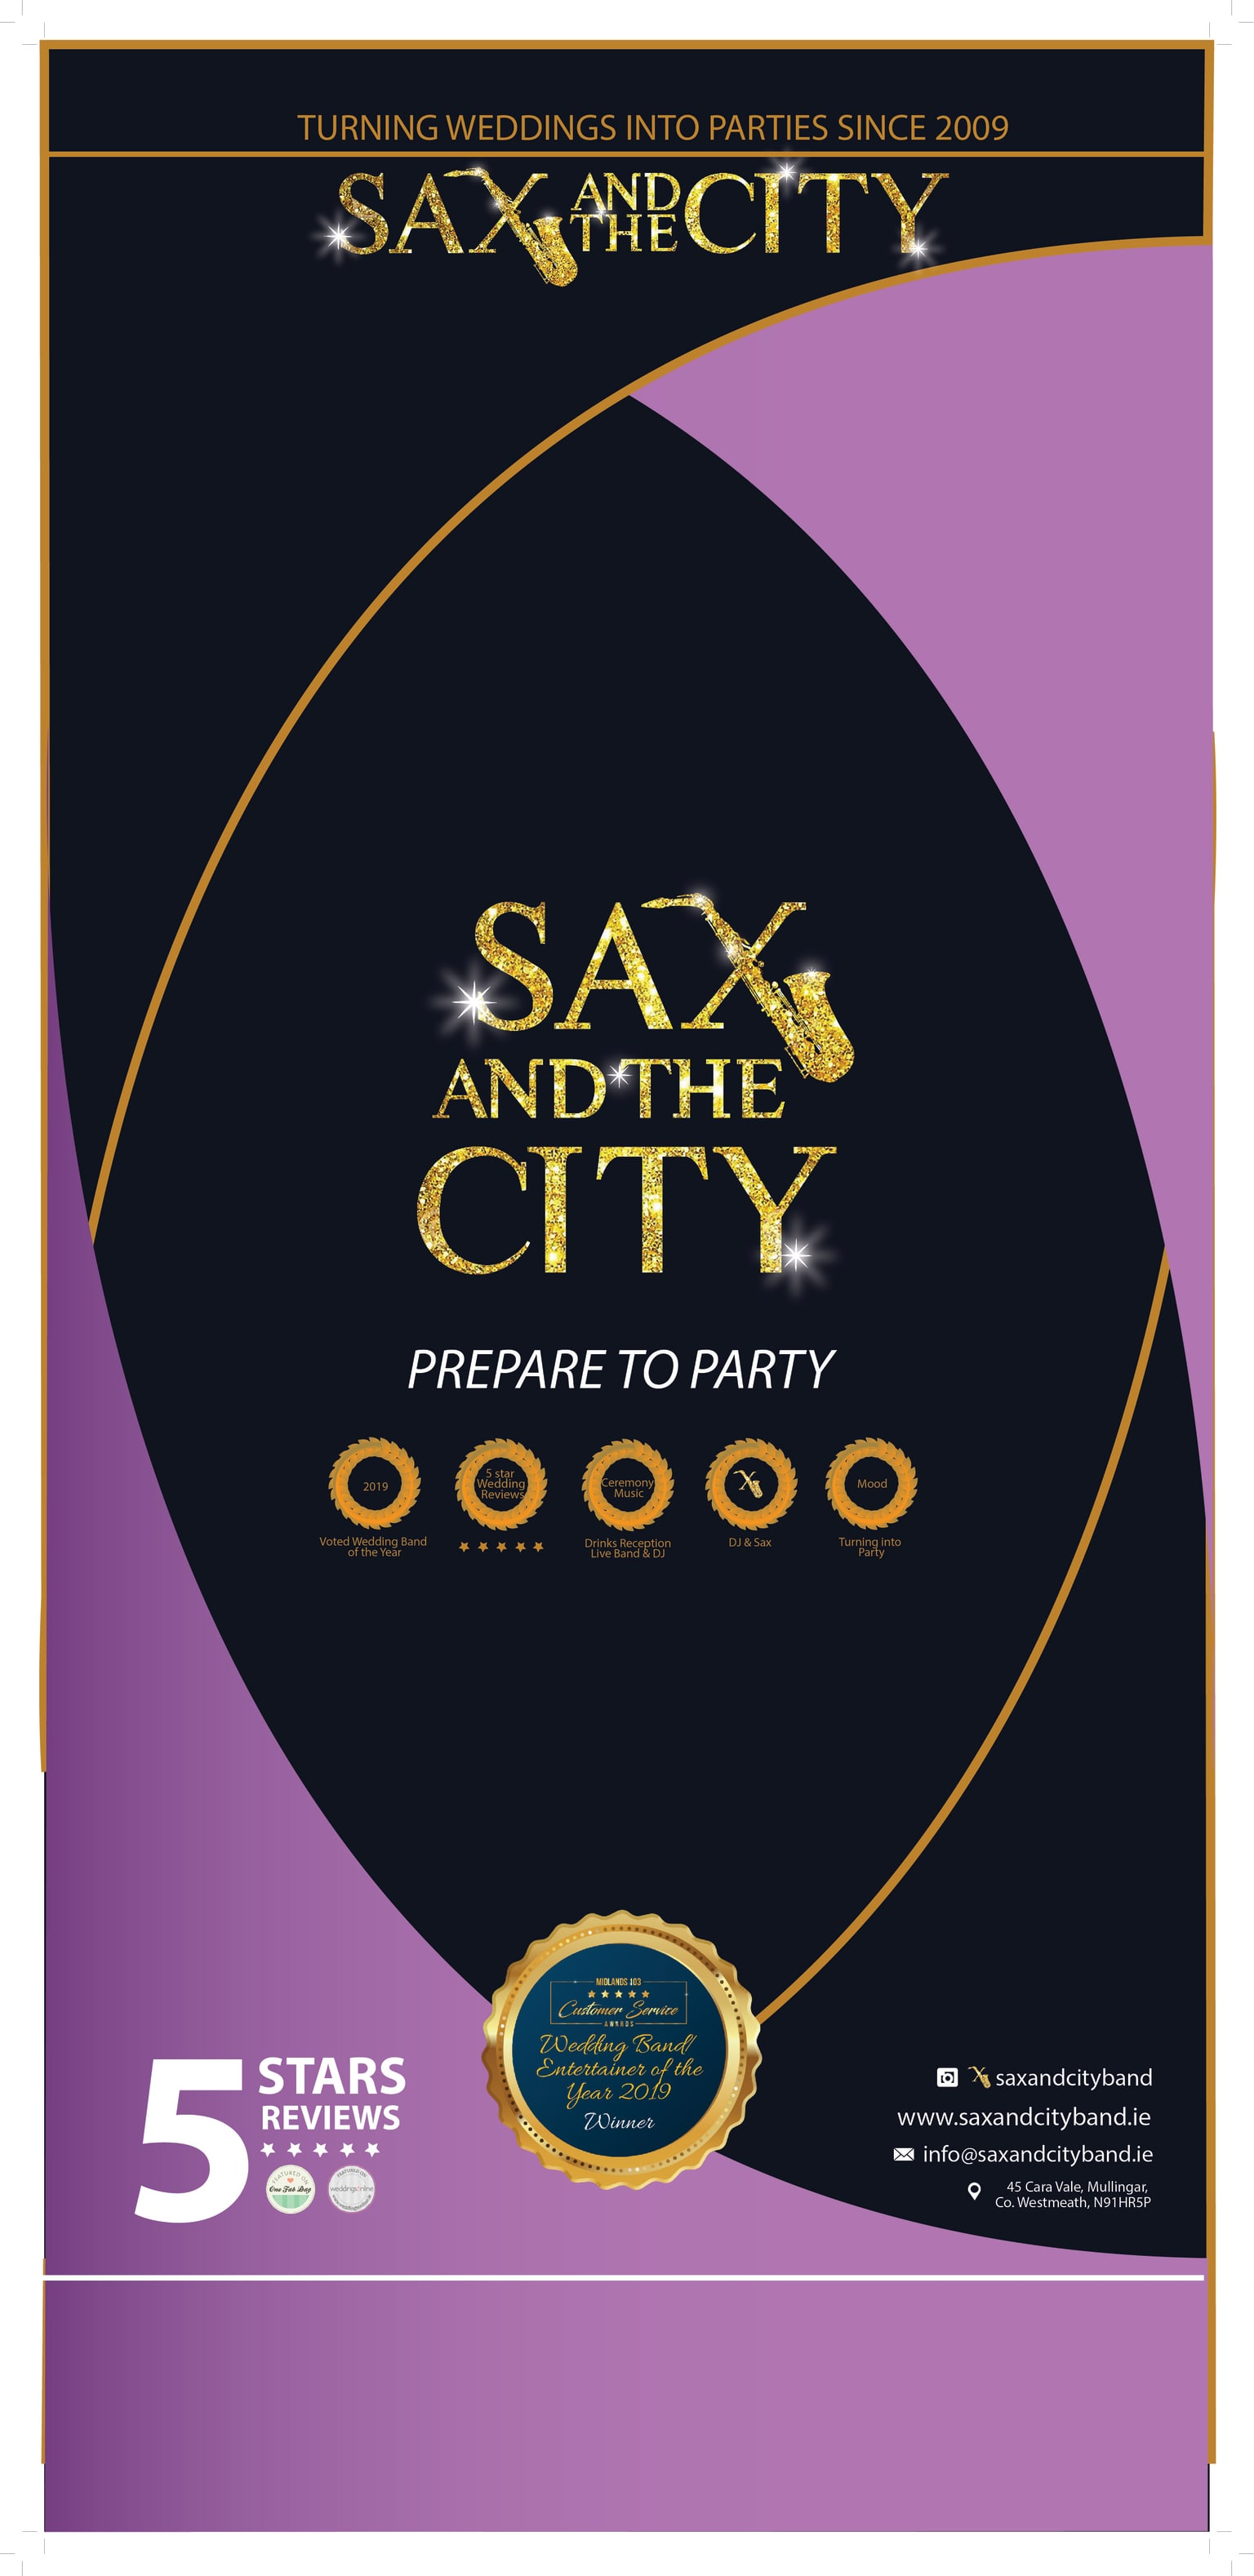 Sax and City Band Banner Design